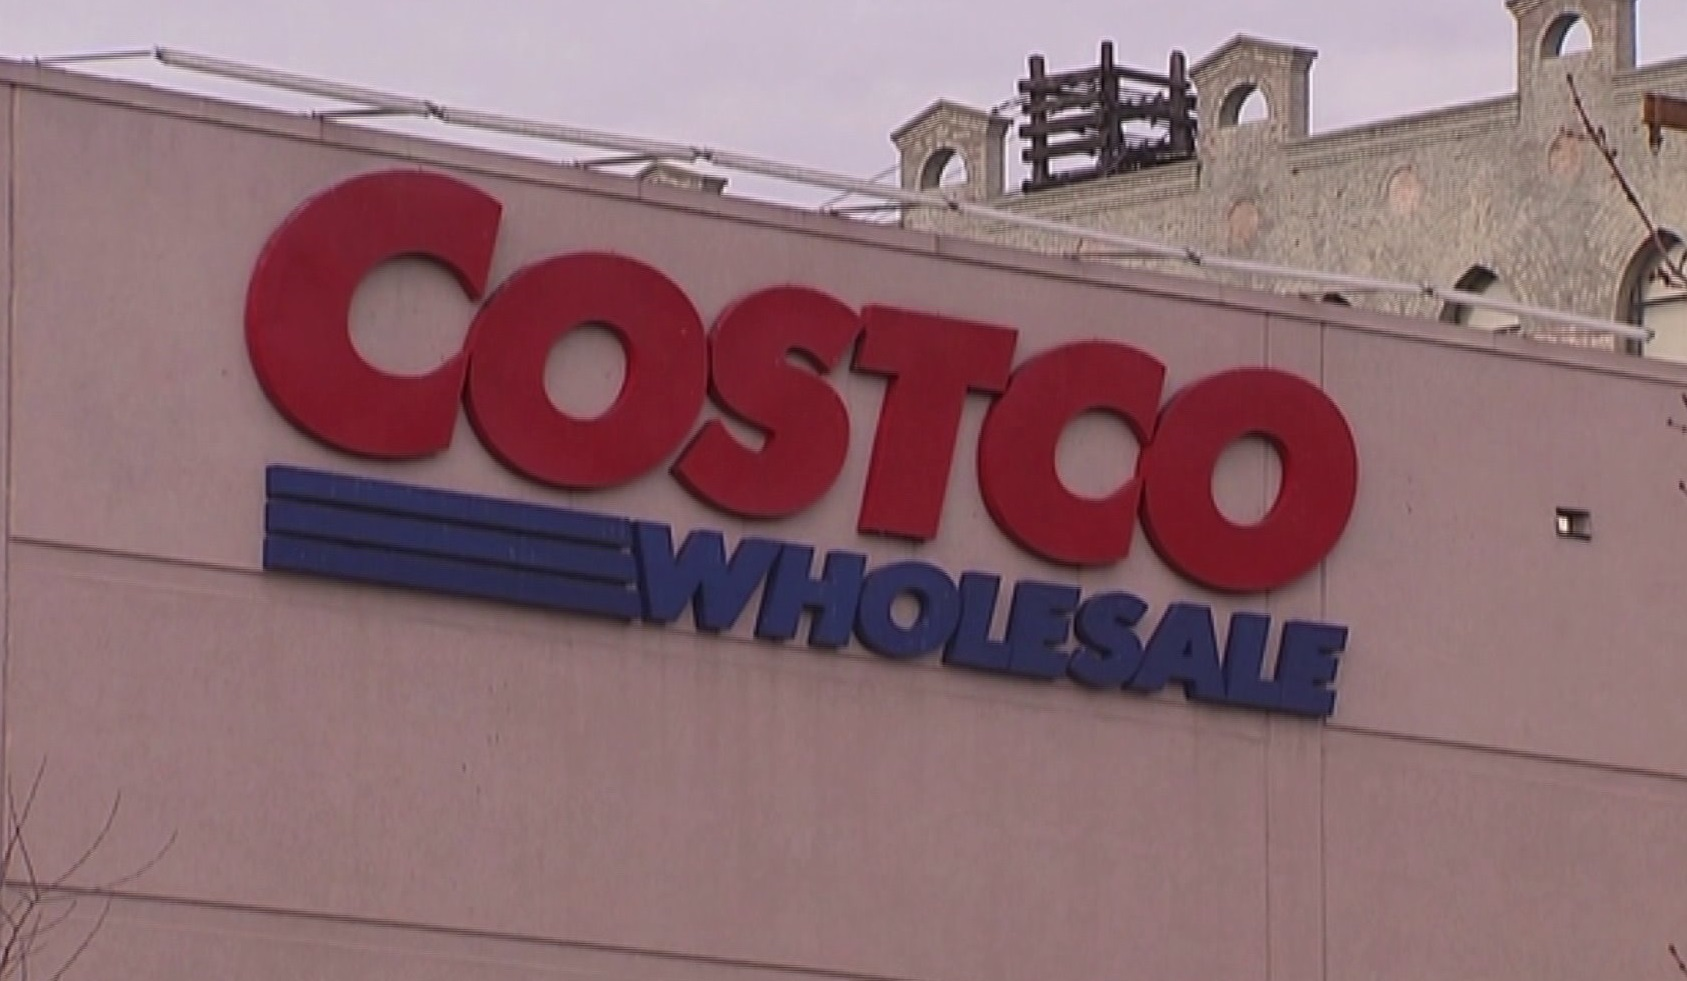 4 things you may be surprised to learn Costco sells - AOL